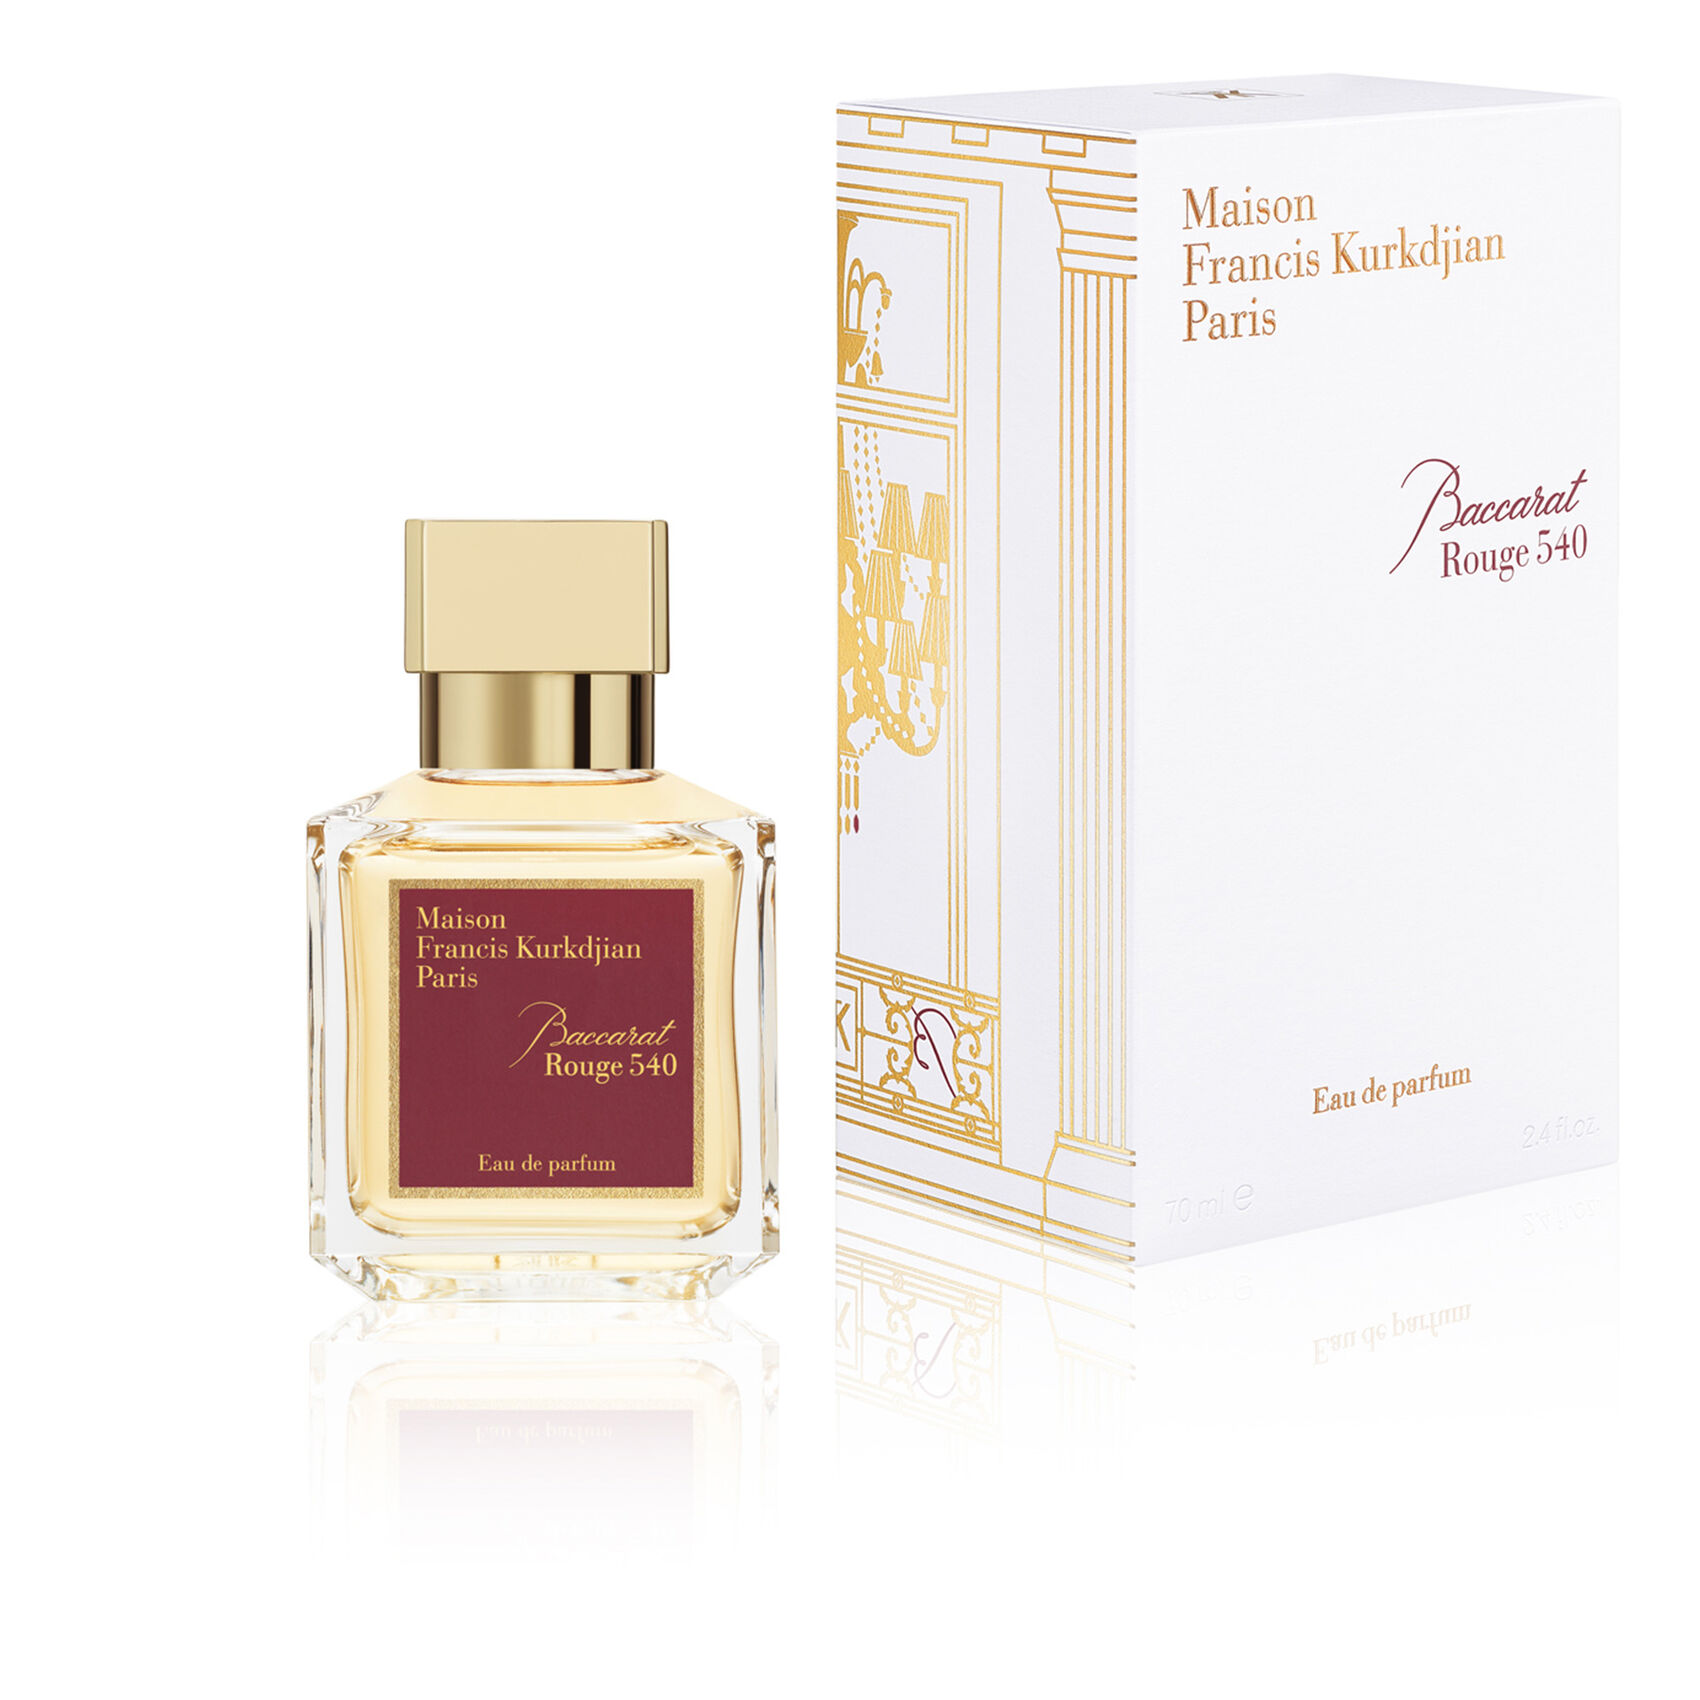 ROUGE 540 EAU DE PARFUM BACCARAT - Little Luxuries Gift Guide - Good Things in Small Packages